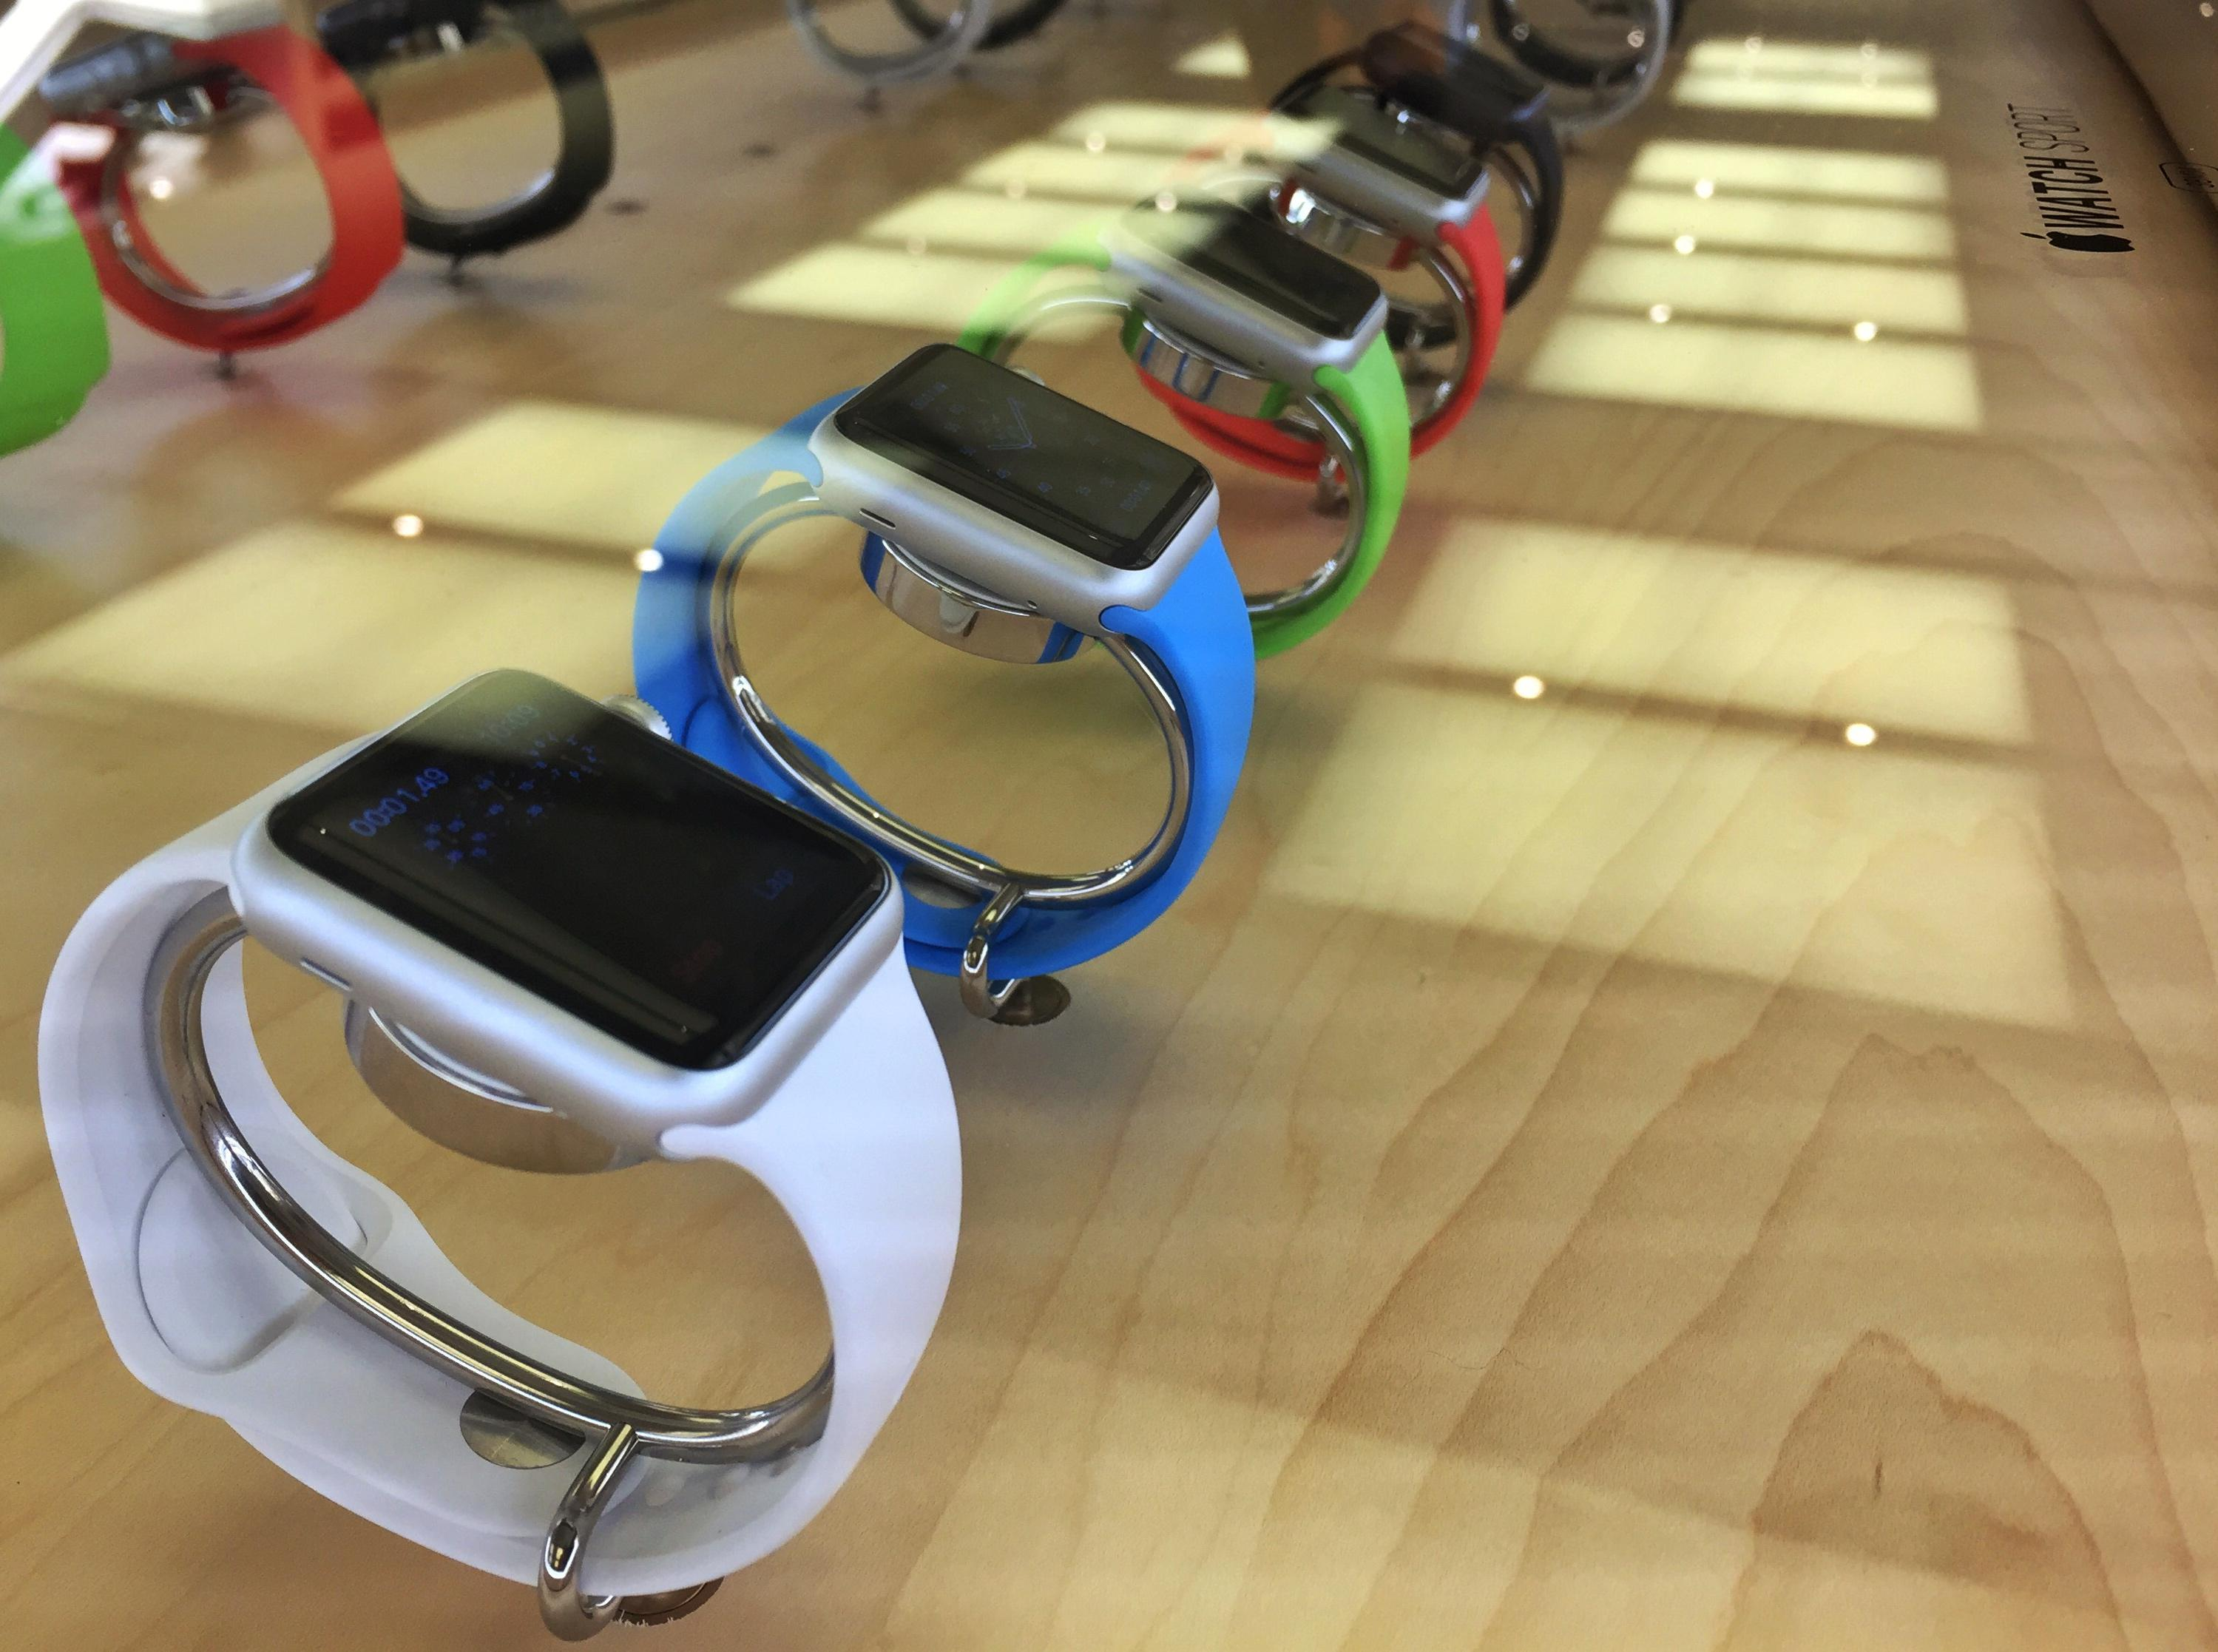 Apple Watch in the enterprise: Why Apple entered the fray on wearables and the Internet of Things